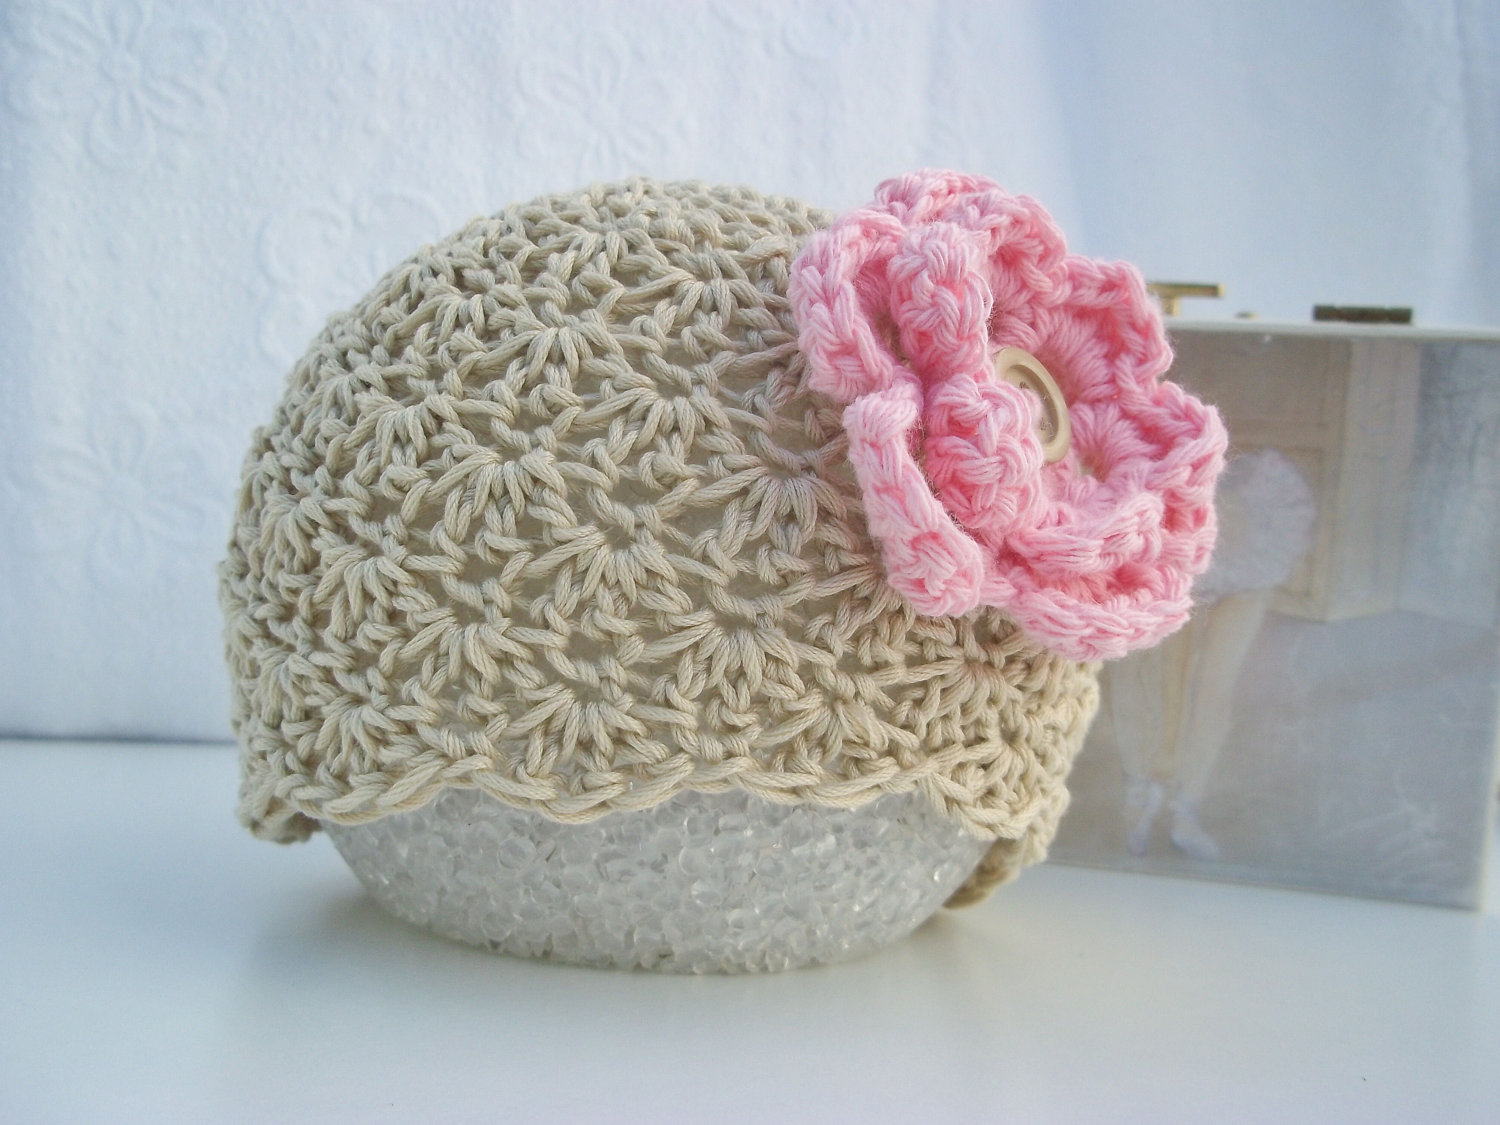 Crochet Newborn Hats : Crochet baby hat - Baby girl hat - Newborn baby hat - Beige - Tan ...